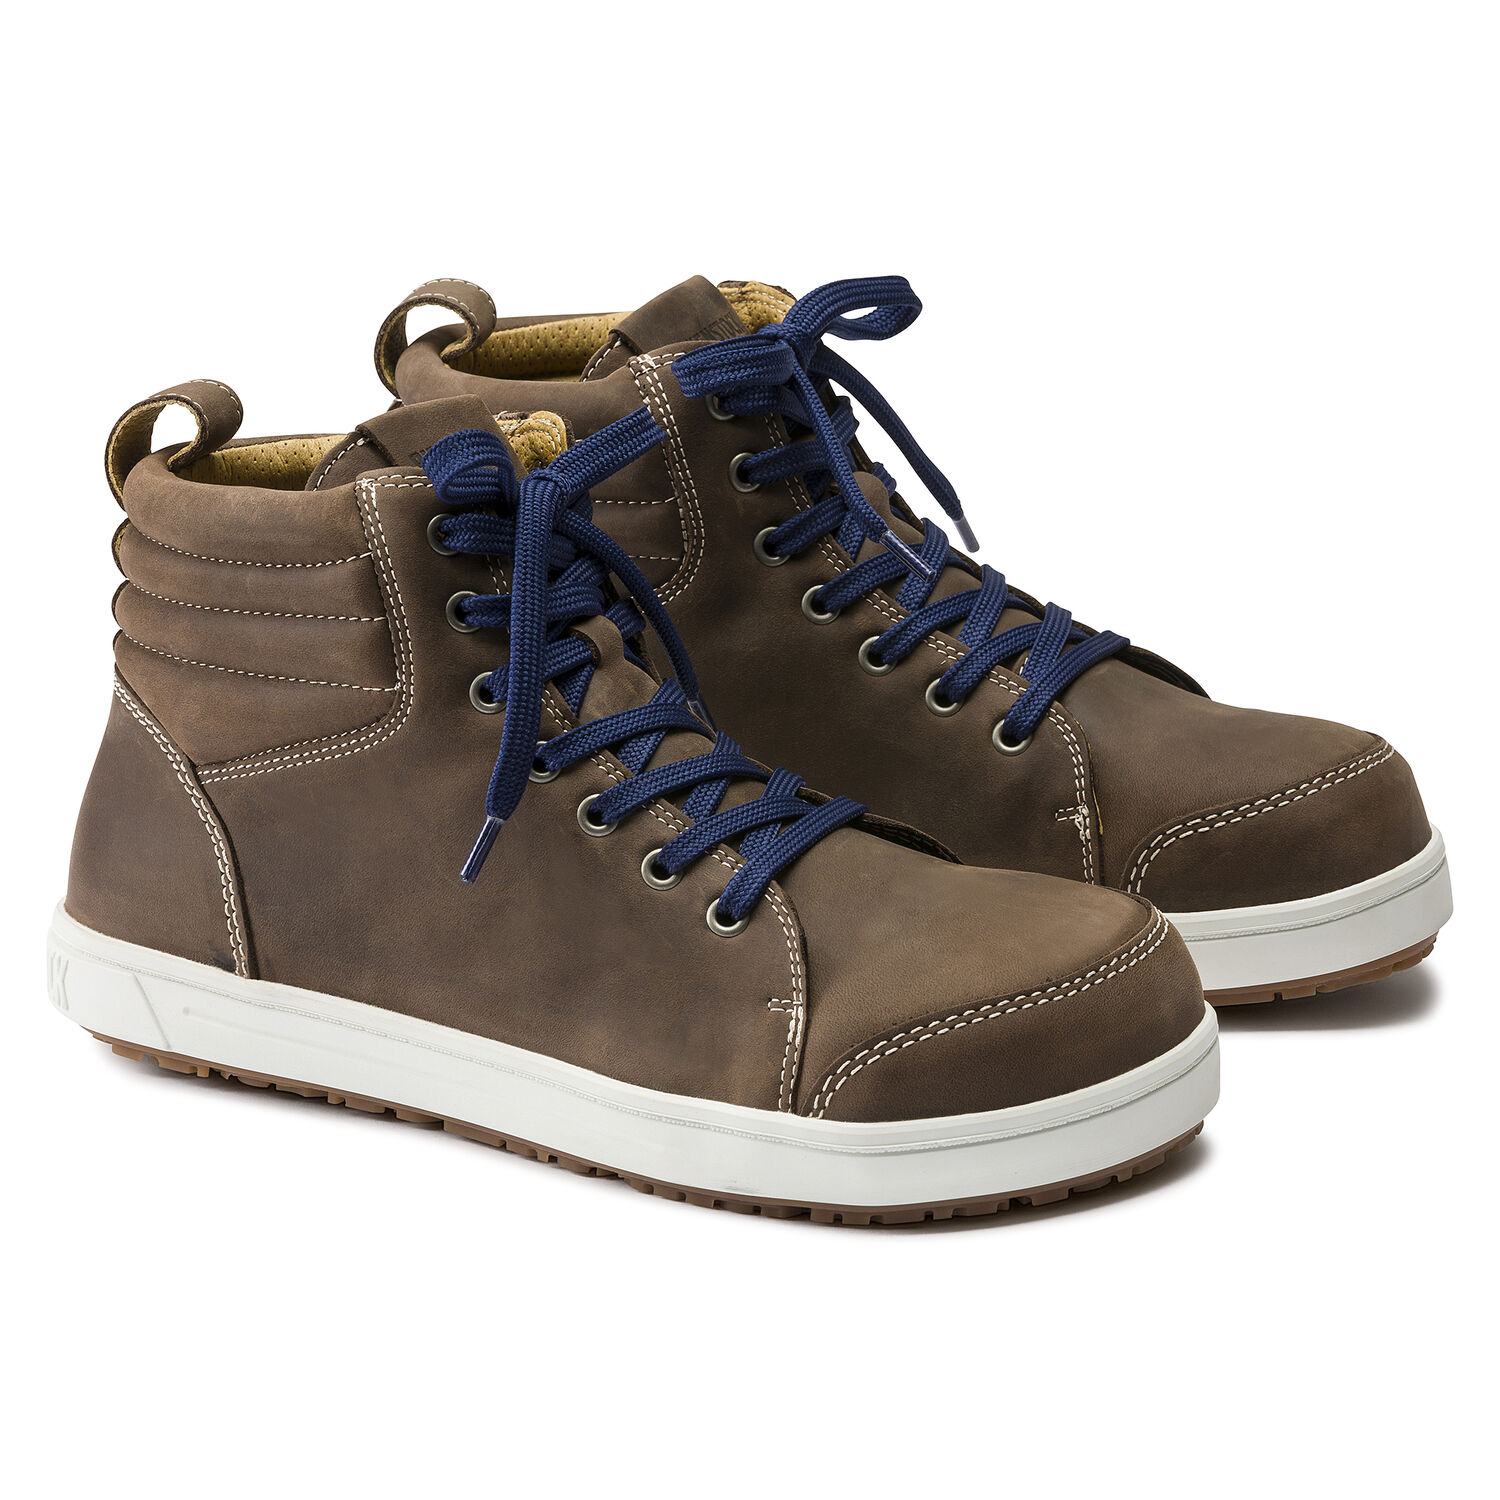 QS Nubuck Leather